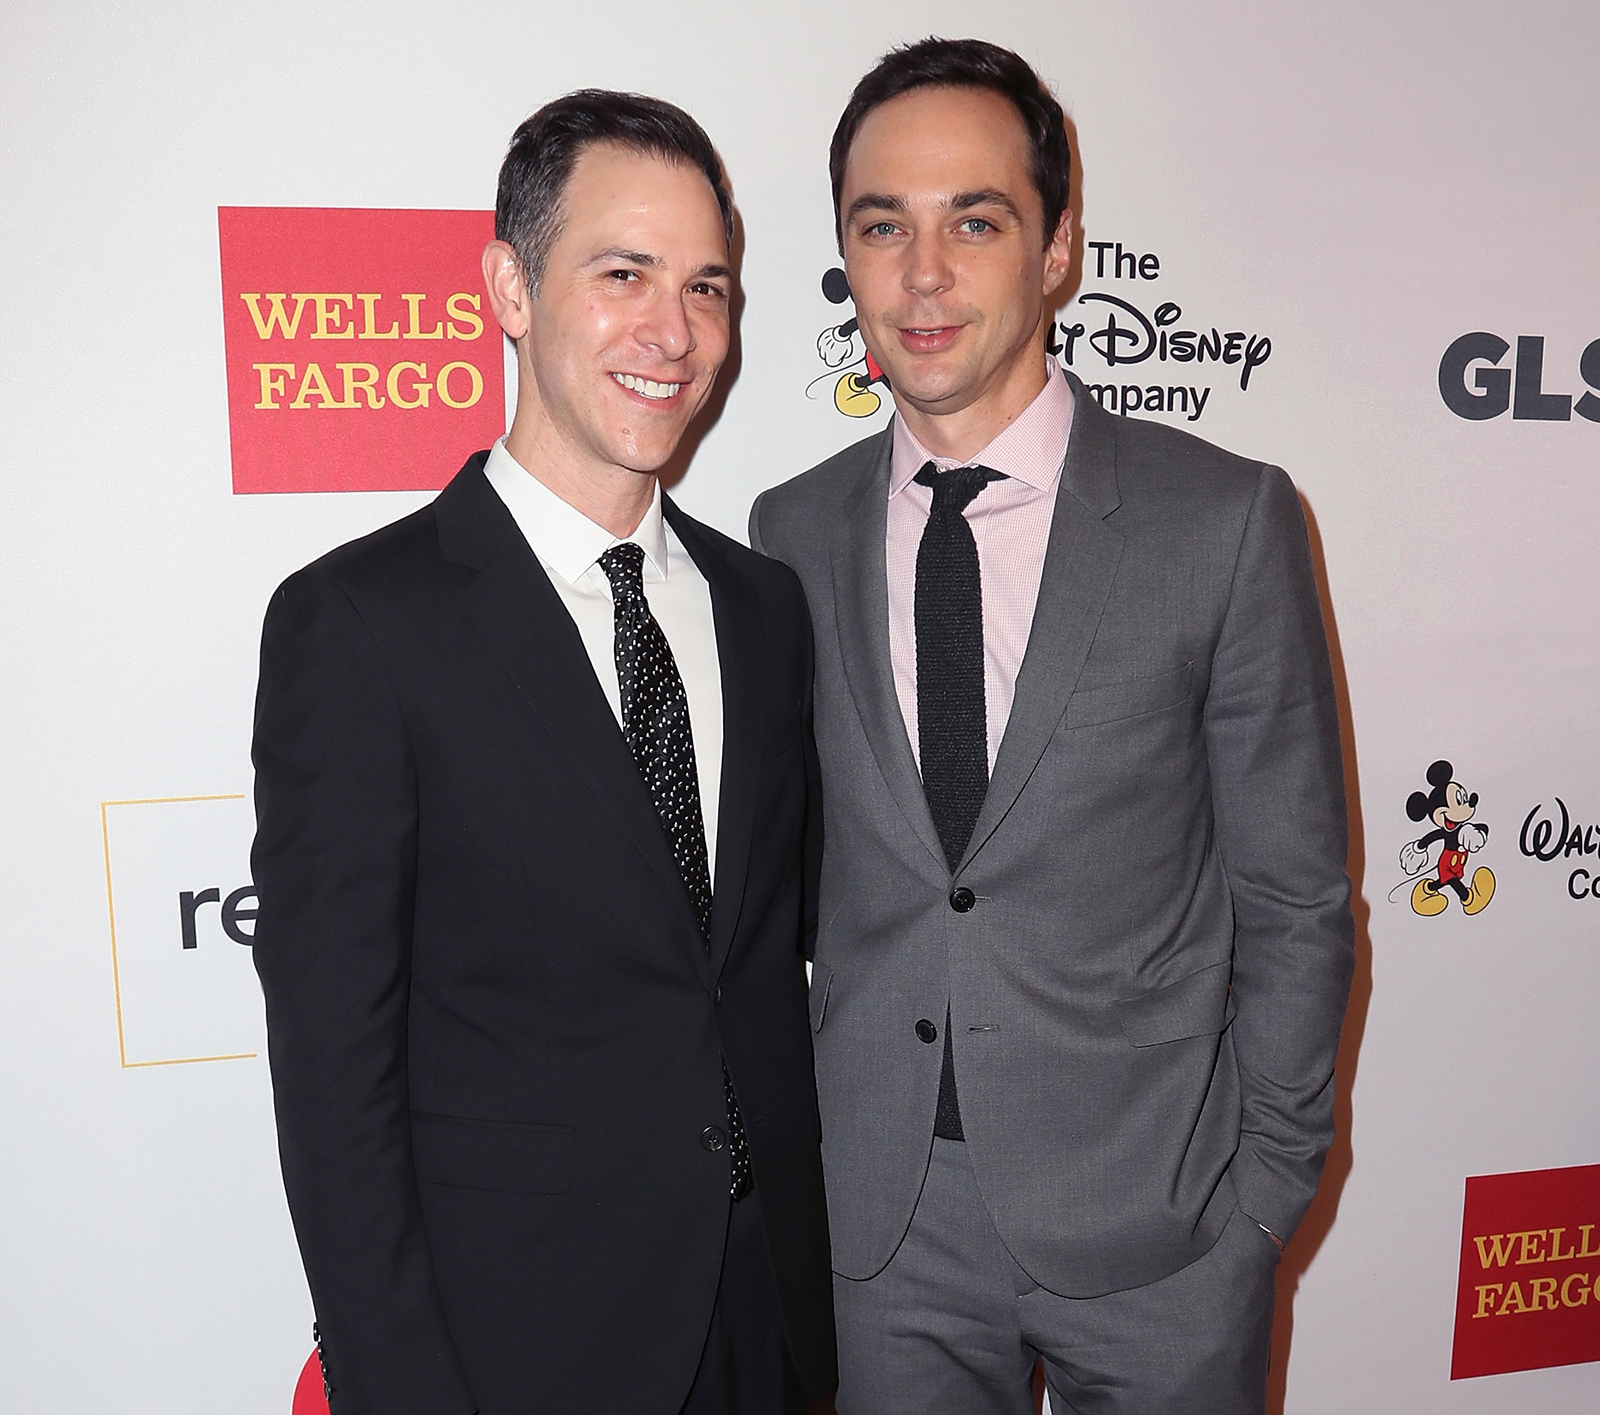 May The 4th Be With You Sheldon Cooper: Big Bang Theory Star Jim Parsons Marries Todd Spiewak In NYC